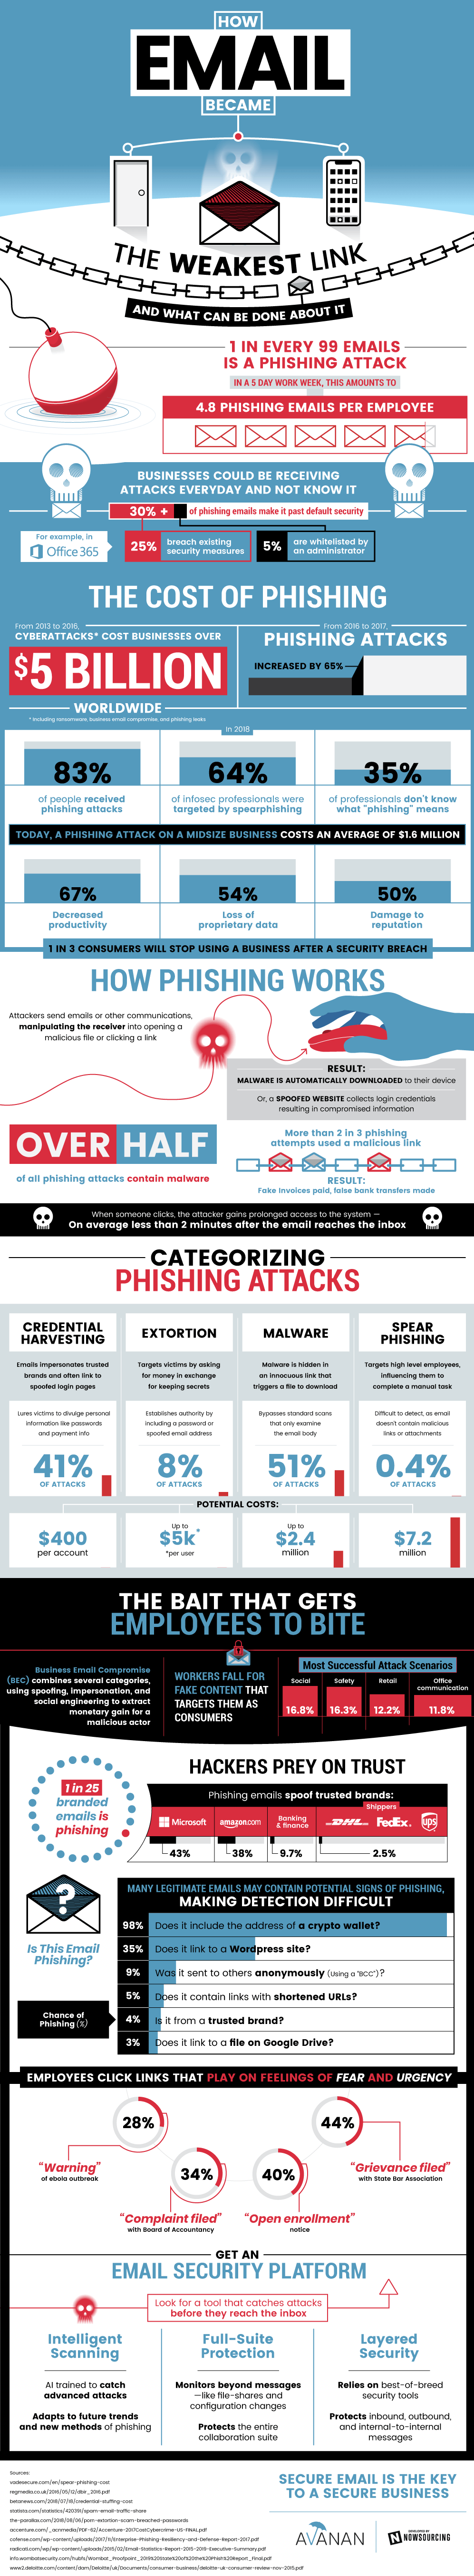 The Cost Of Phishing #infographic